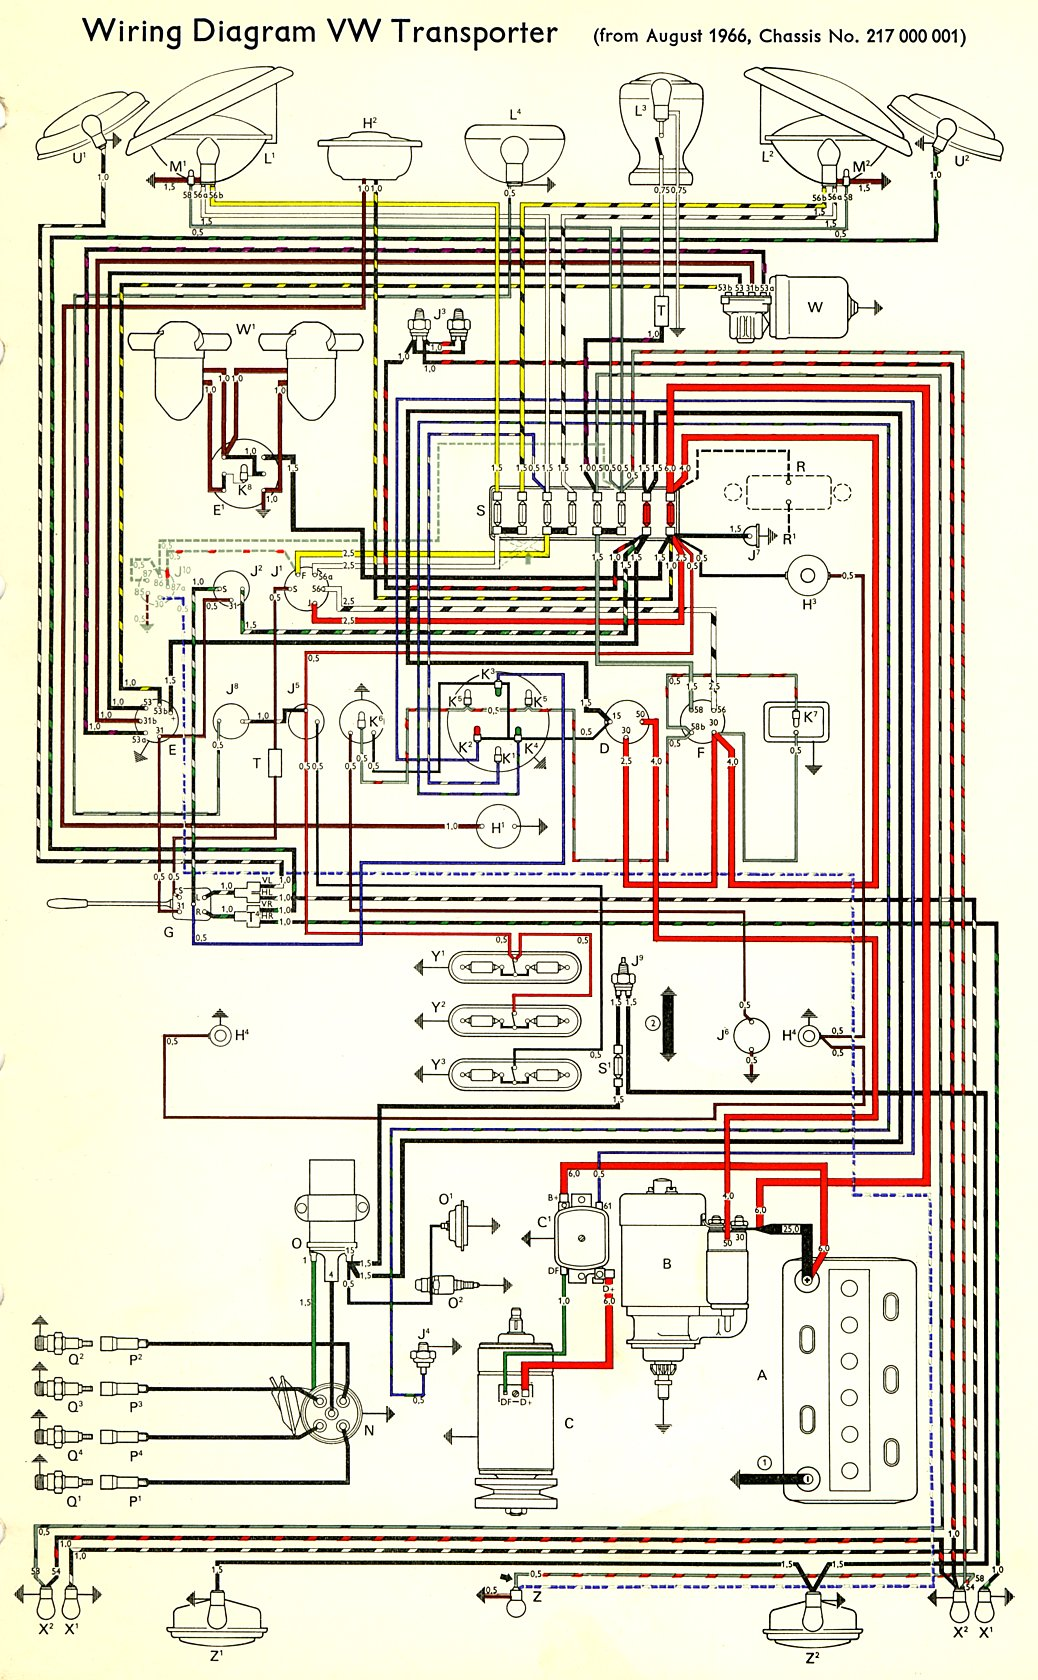 1967 bus wiring diagram thegoldenbug com rh thegoldenbug com dcc bus wiring  diagrams school bus wiring diagrams